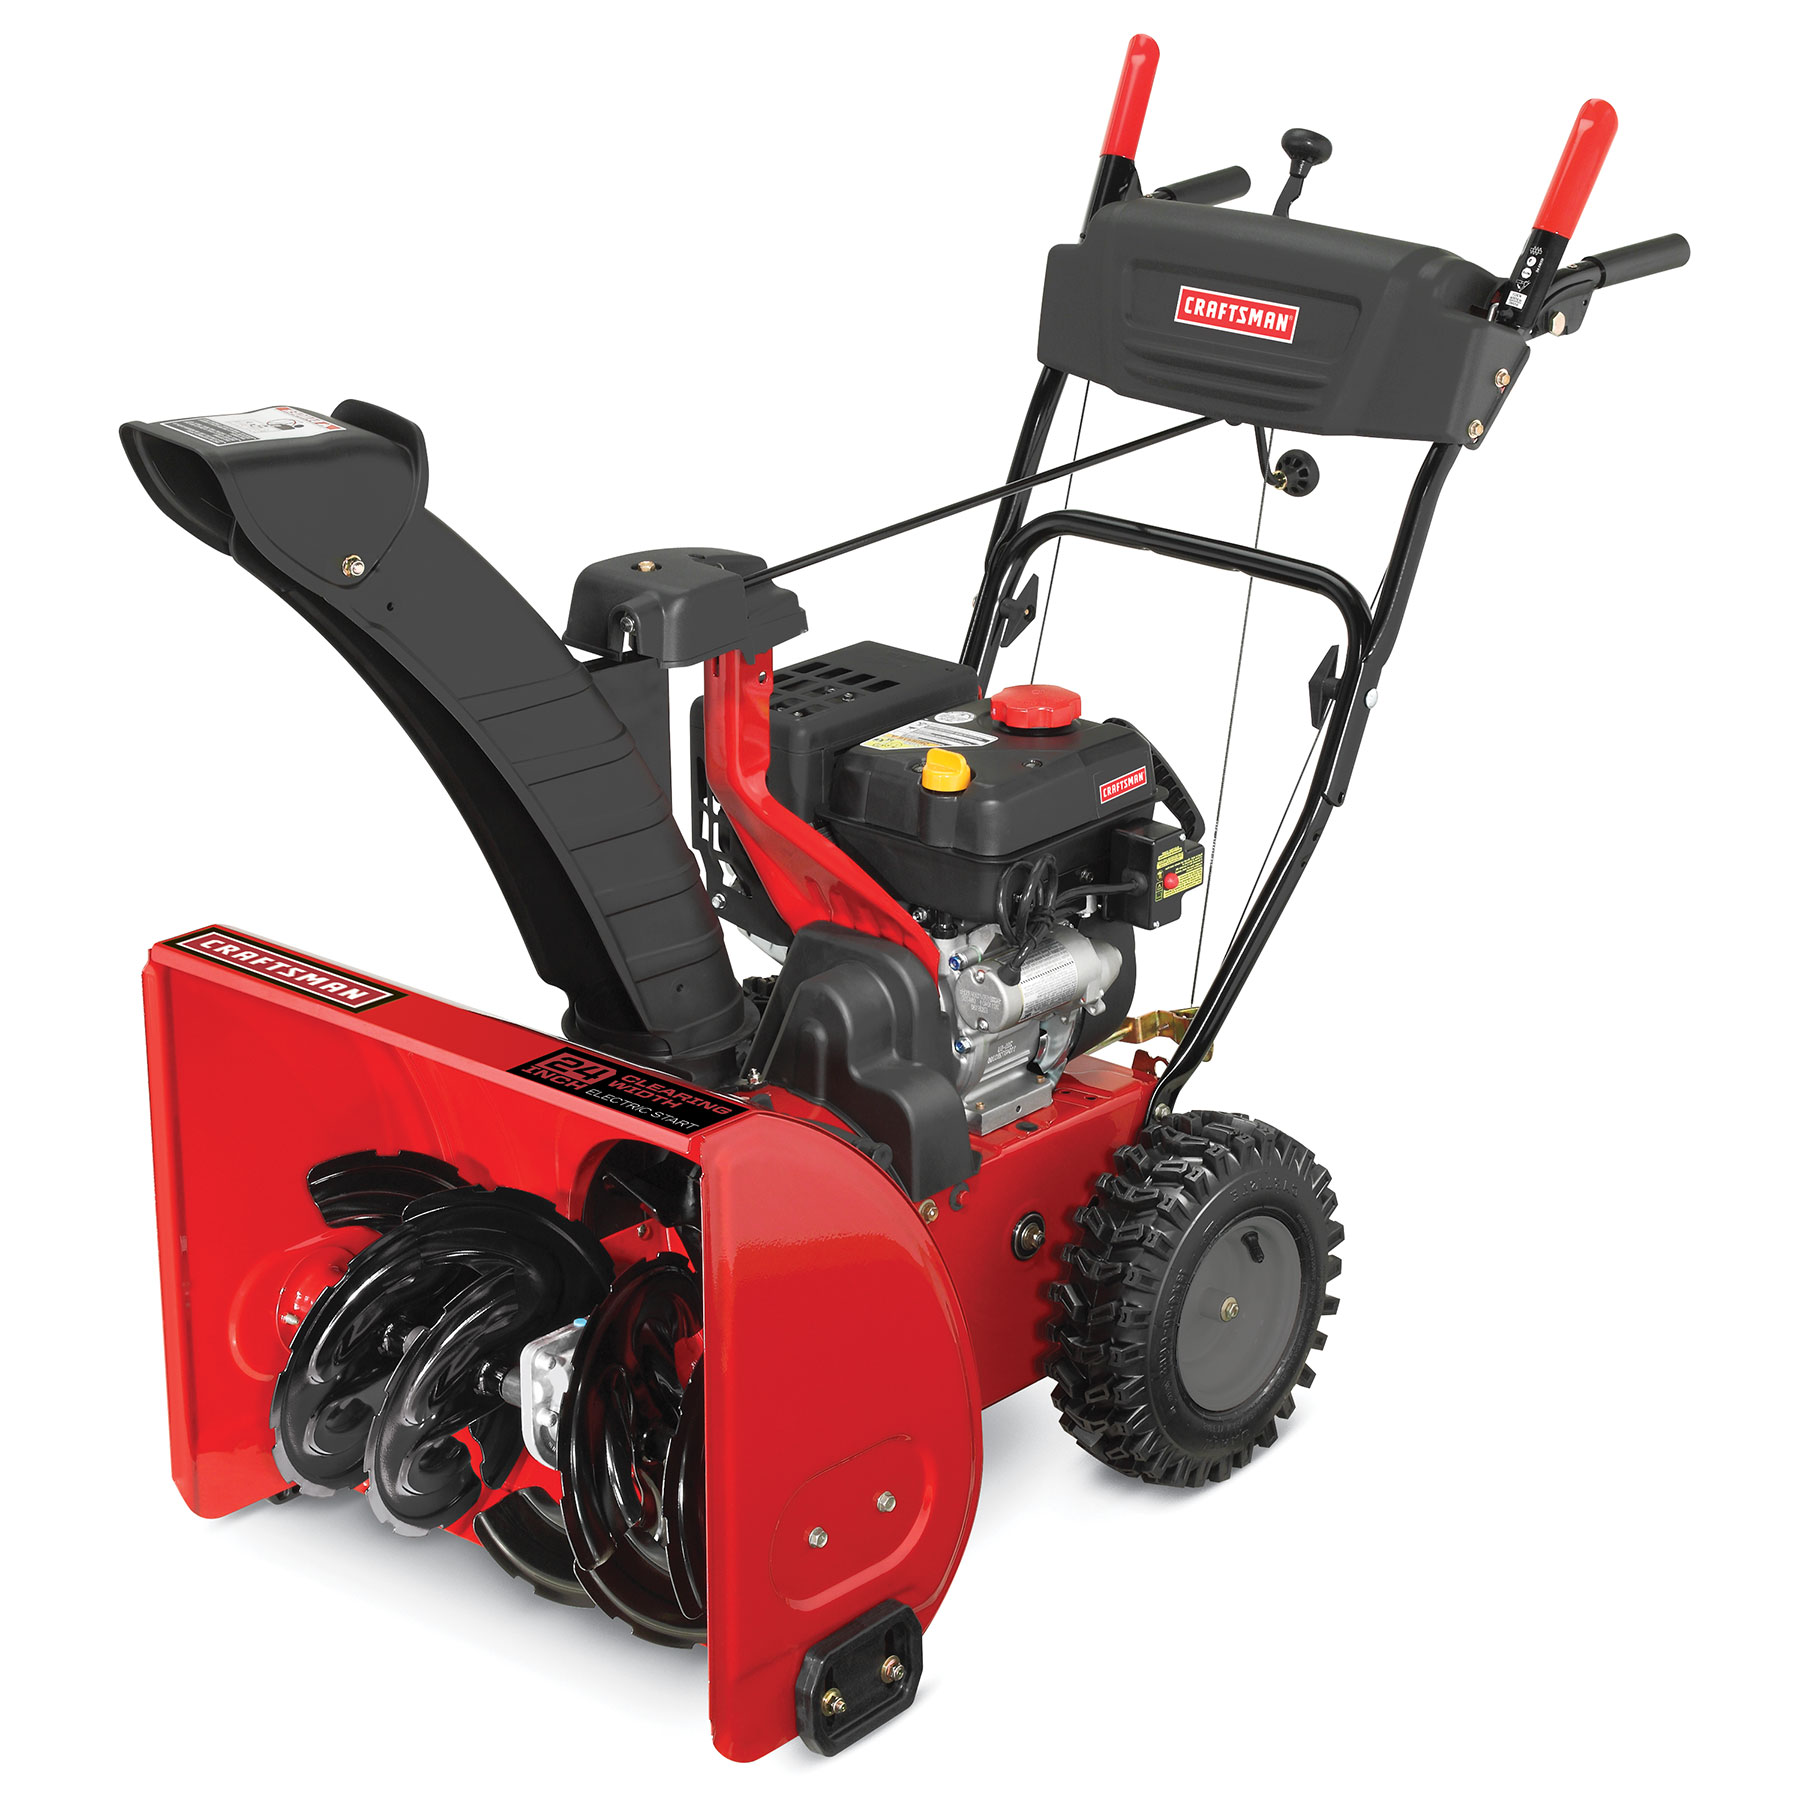 Sears Mastercraft Snowblower